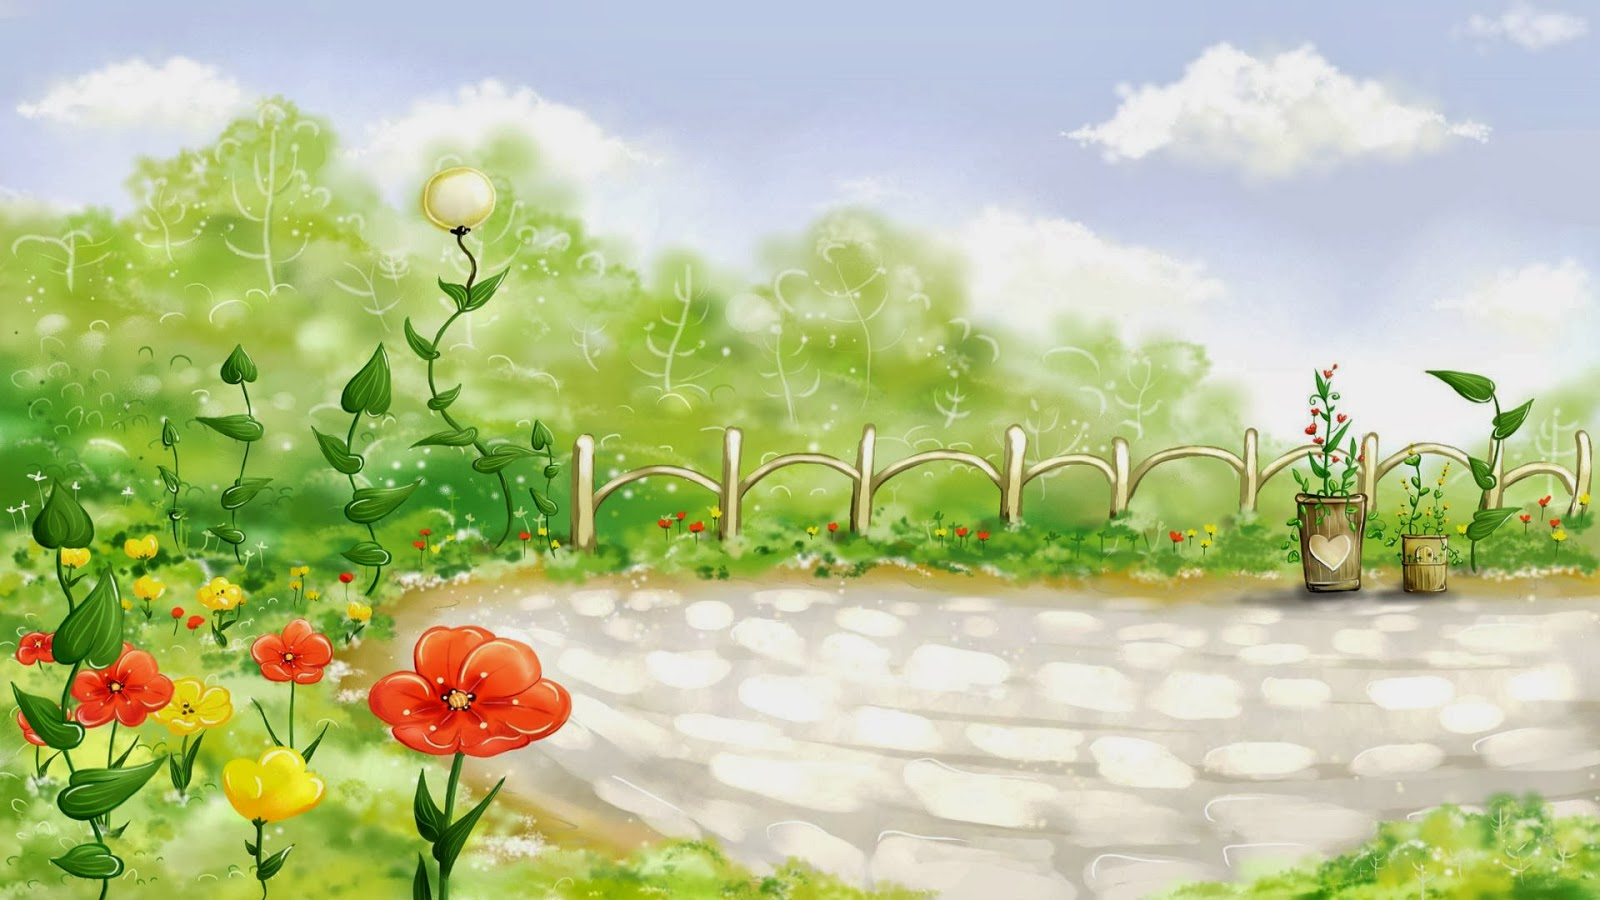 Cartoon Garden Wallpaper Free | Pic Gallery